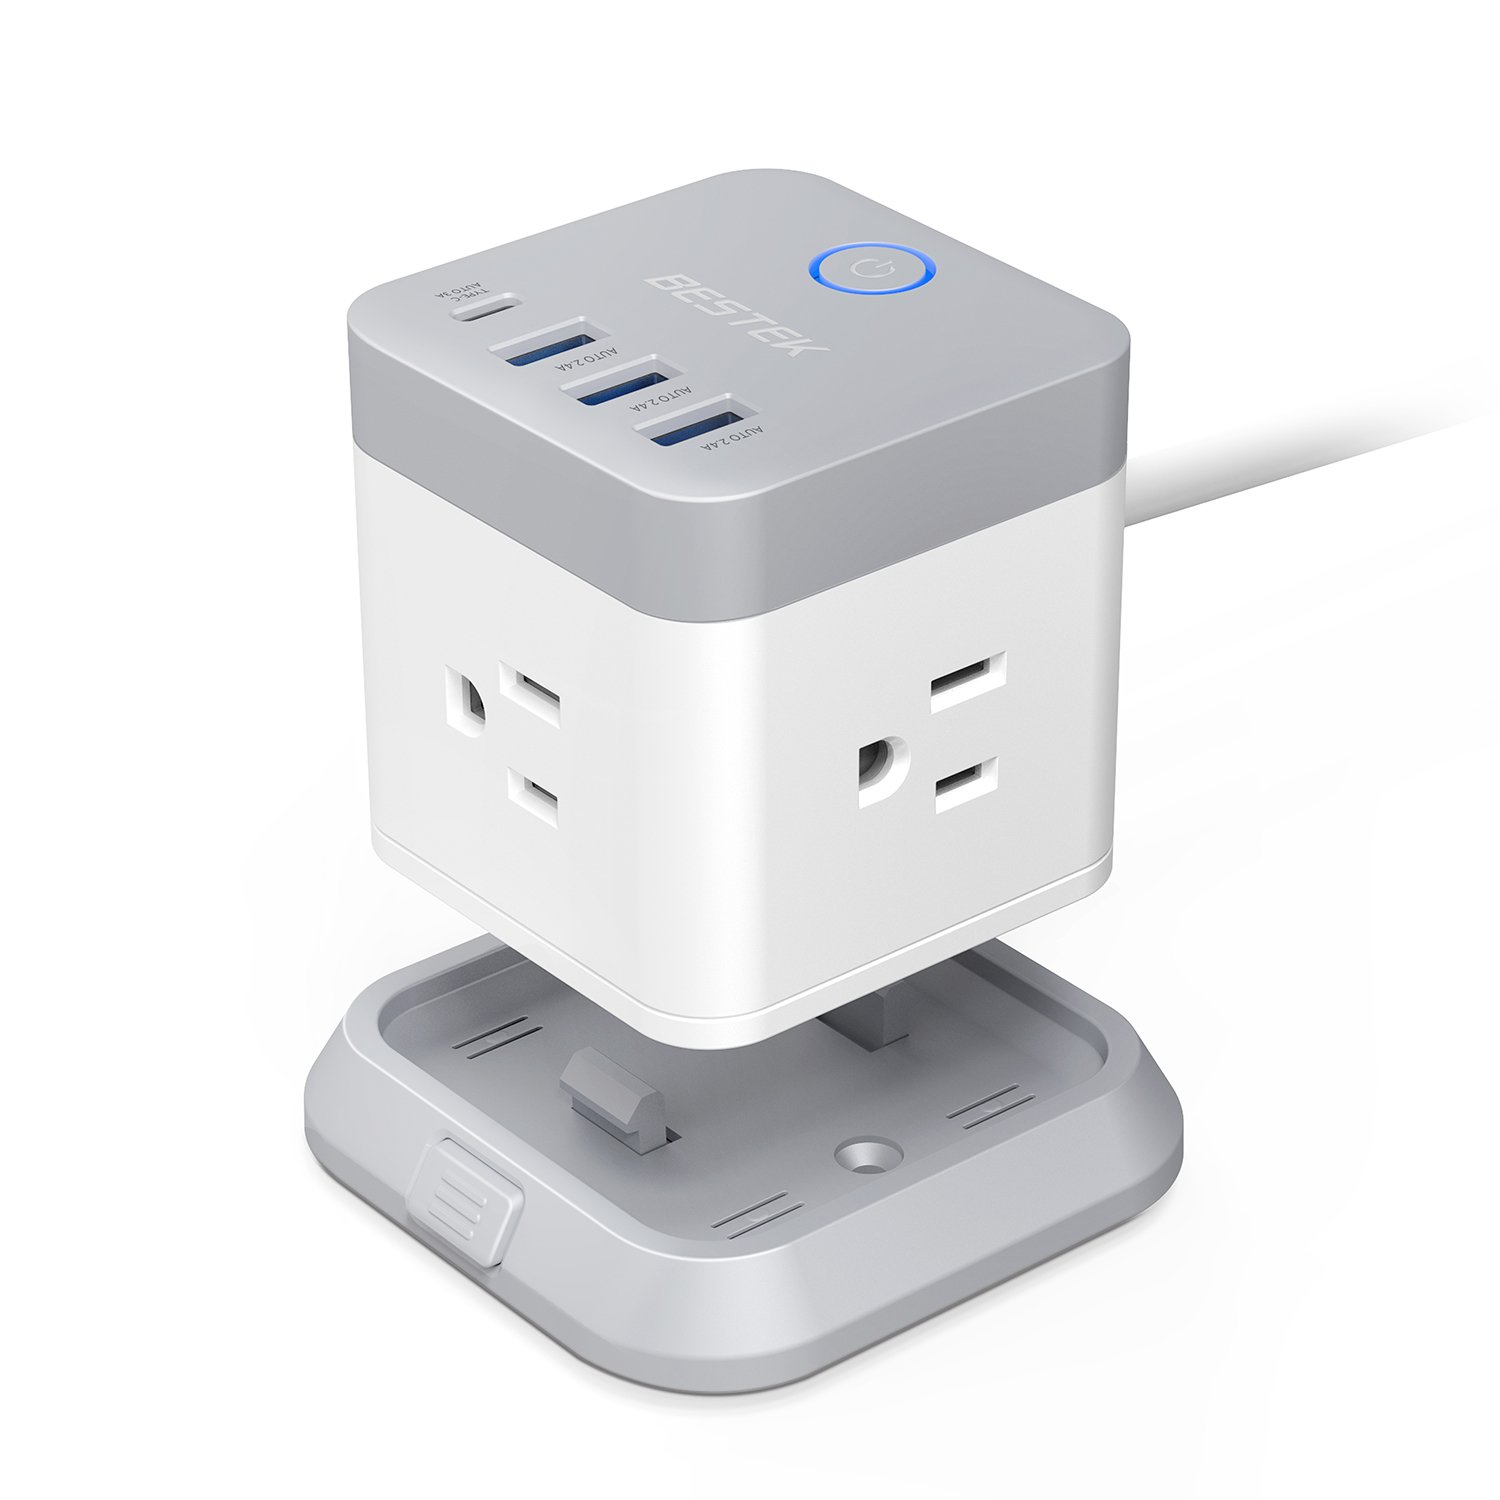 BESTEK Power Strip with USB,Vertical Cube Mountable Power Outlet Extender with 3 Outlets,3 USB &1 Type-C Ports,5-Foot Extension Cord and Detachable Base for Easy Mounting,1875W